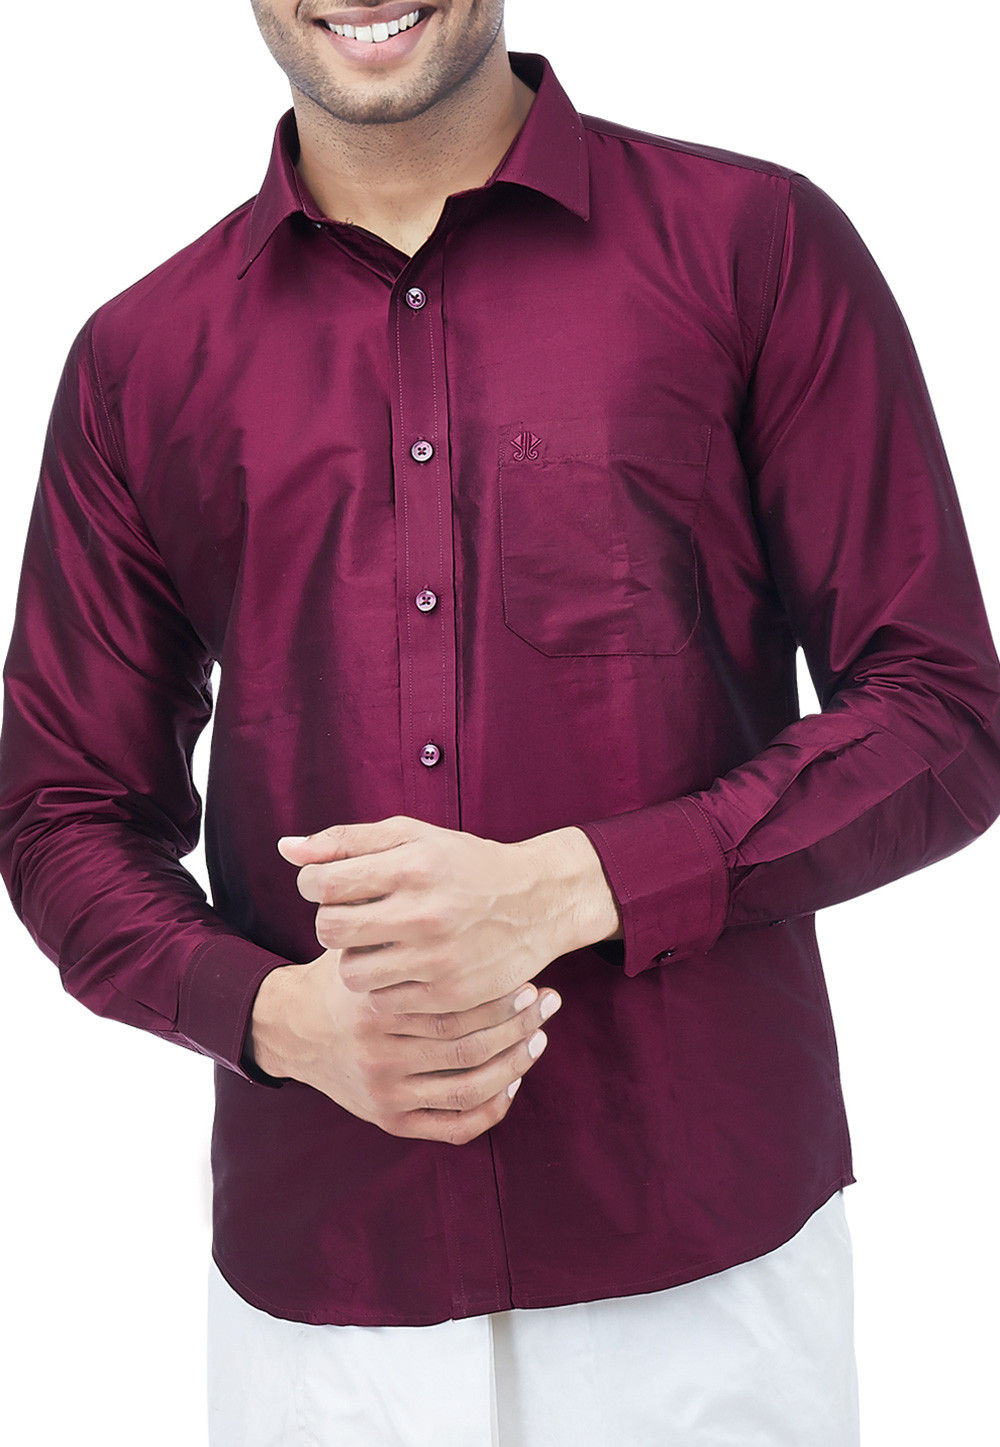 0d066d76412f38 Woven Pure Silk Dhoti with Shirt in Maroon   MXT169